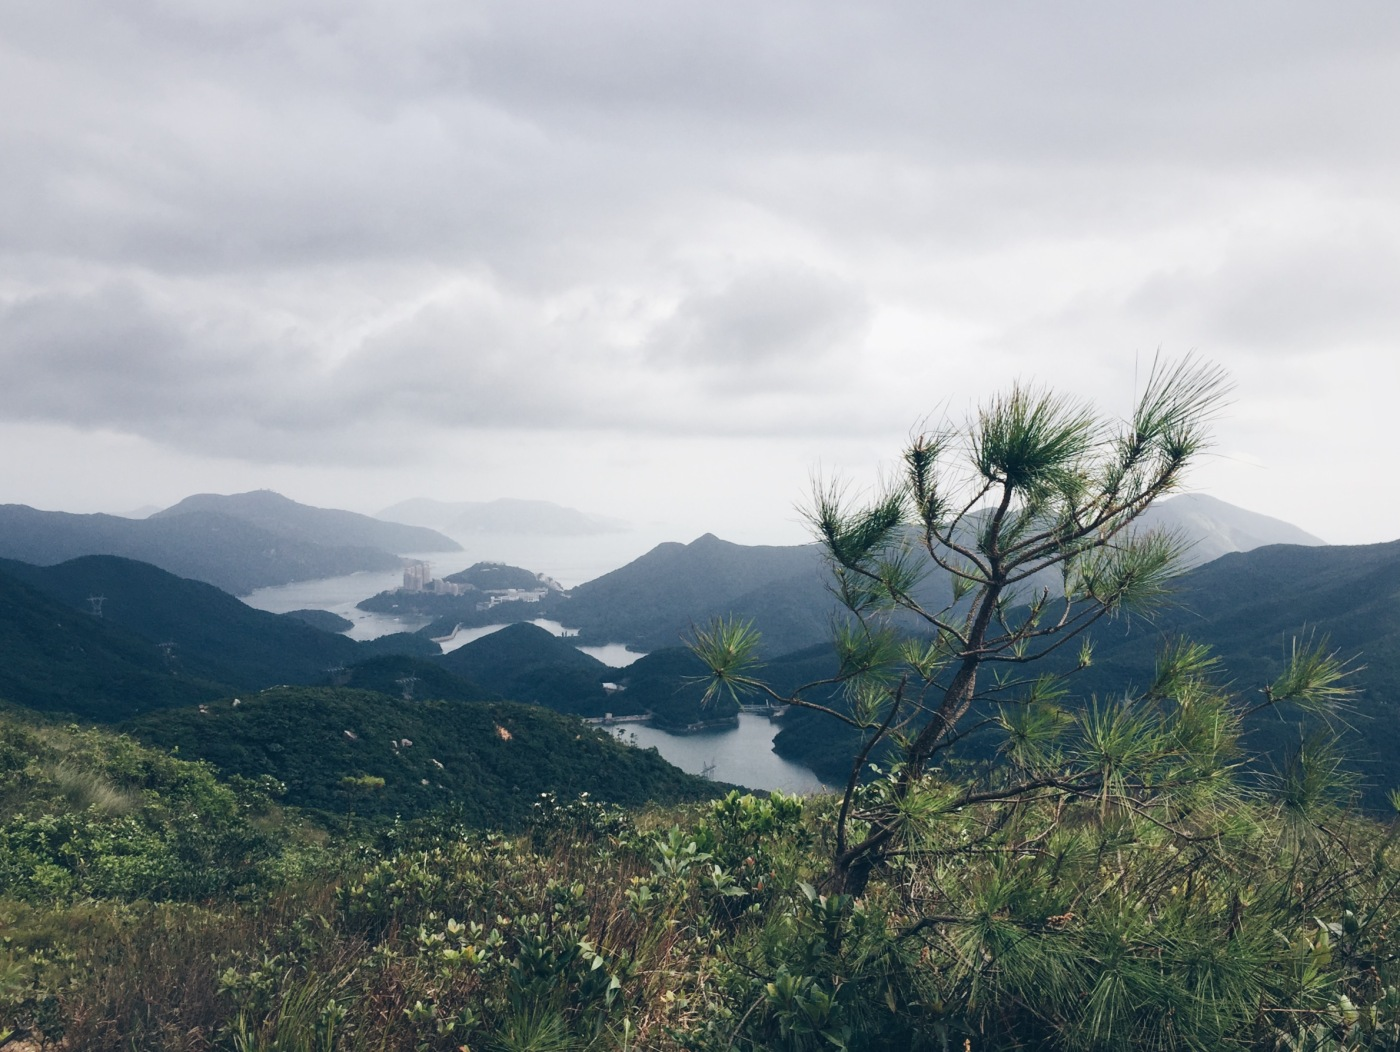 Tai Tam Reservoir 大潭水塘 and Tai Tam Harbour 大潭港 as viewed from somewhere in between Jardine's Lookout 渣甸山 and Mount Butler 畢拿山